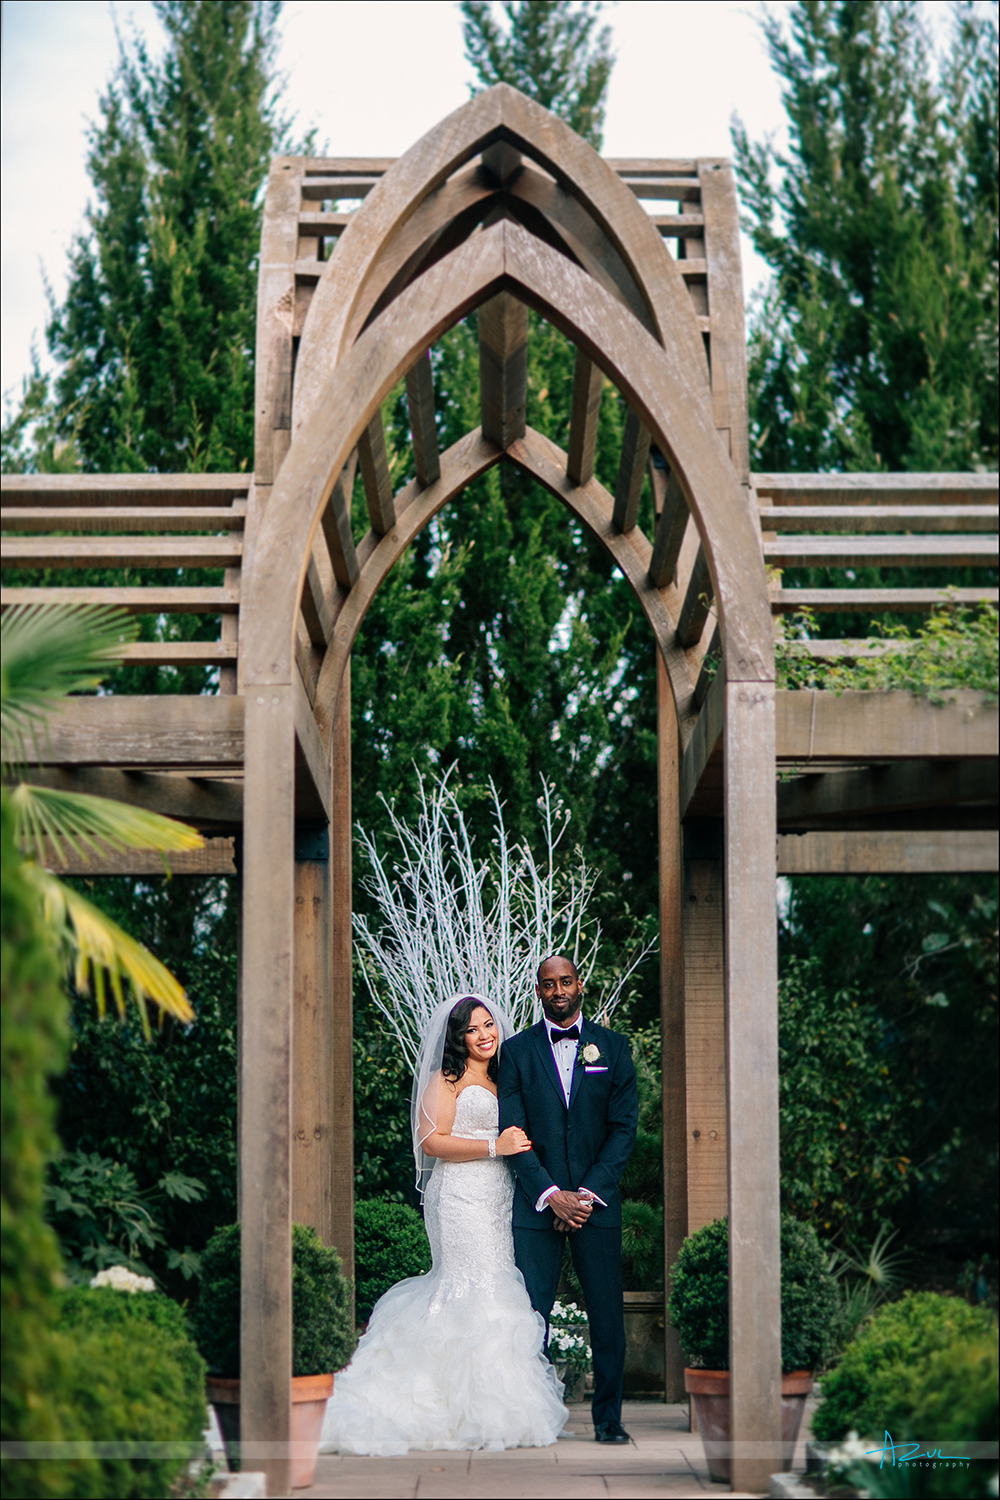 Best wedding day photography portrait of bride and groom at Duke Gardens in Durham NC